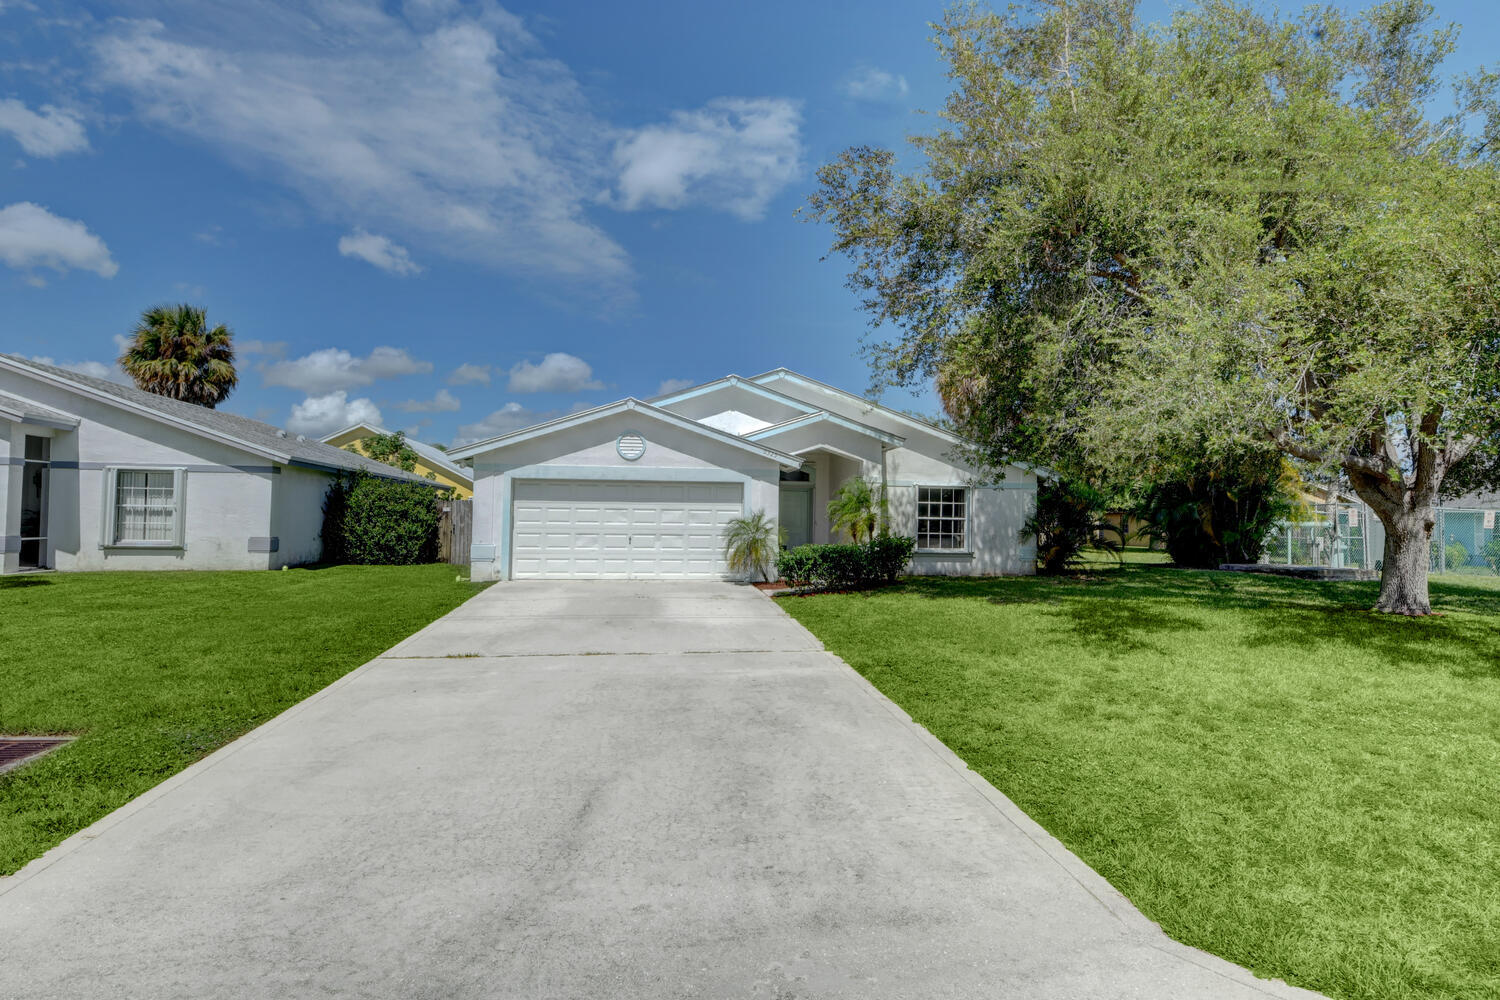 Don't miss this Cute & Cozy CBS 3/2/2 pool home. Located in the very popular Palm Beach Heights area of Jupiter.  This homes features remodeled Kitchen & baths, newer appliances, Tile & Laminated Flooring, new A/C, Metal Roof, Screened Patio, and fenced yard. There is no HOA. A rated schools, Just a short distance from Abacoa's public golf course, Baseball Stadium, FAU college, Dining and shopping. This home will not last come see it today!